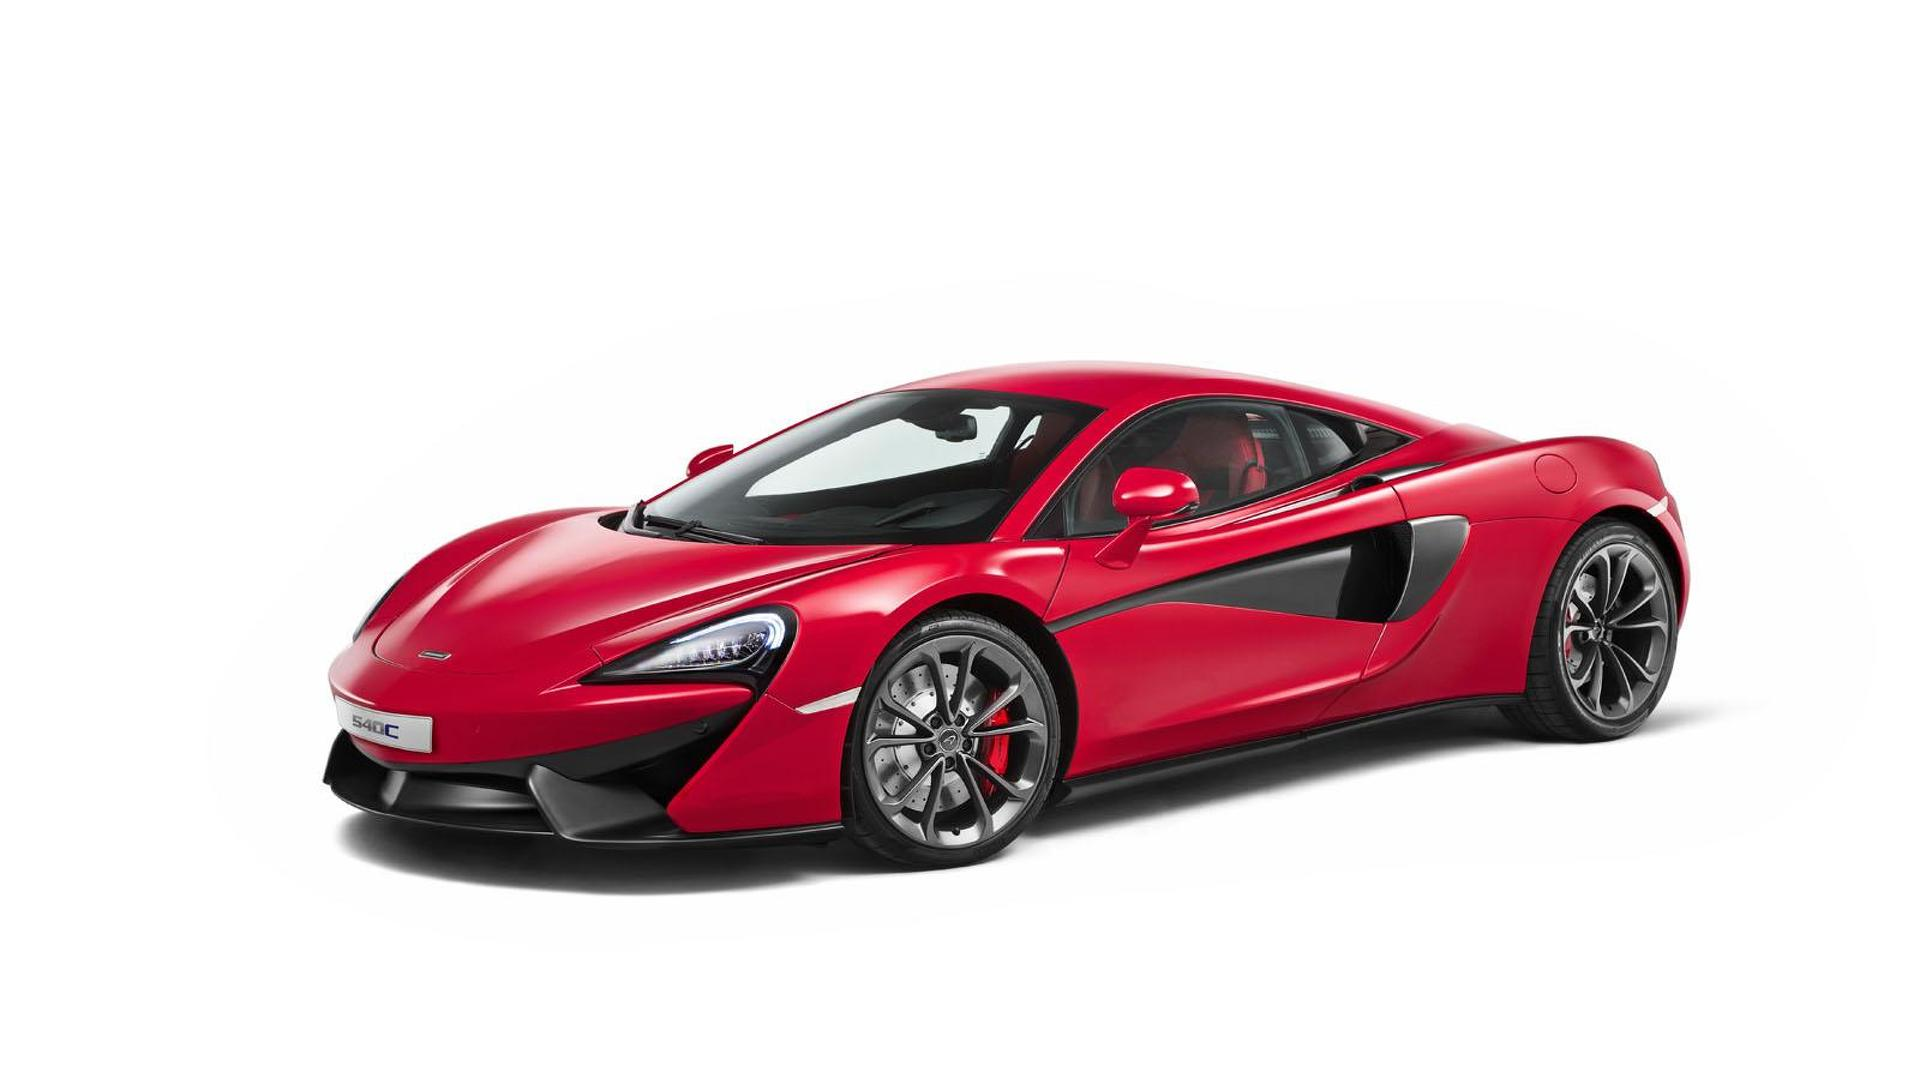 McLaren 540C unveiled, is their most affordable model to date